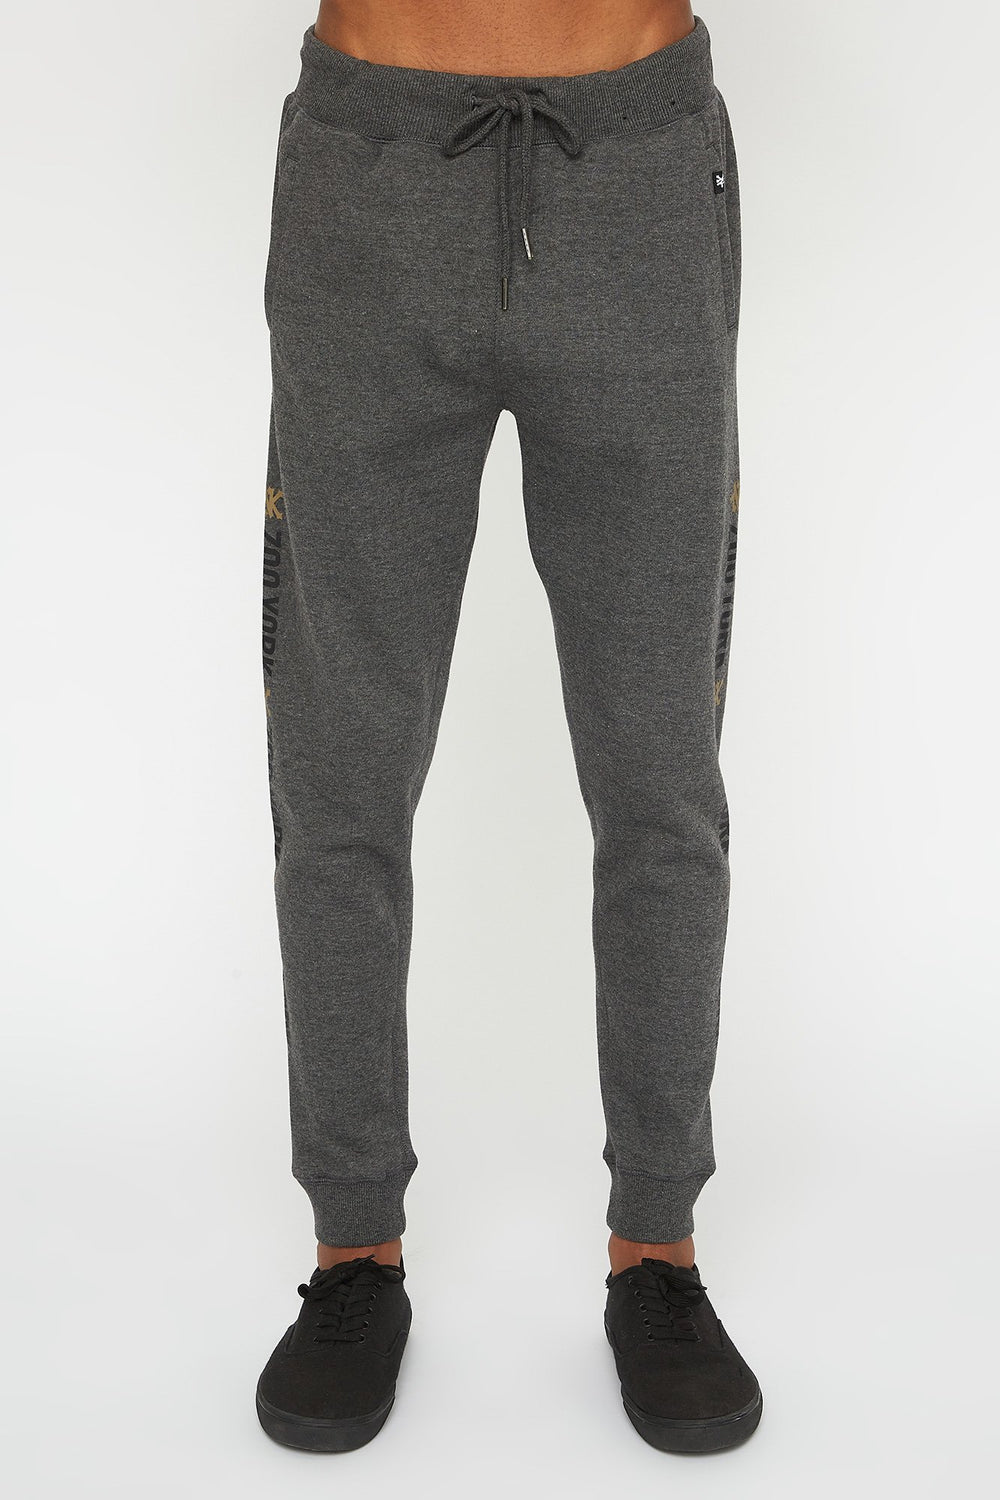 Zoo York Mens Basic Logo Jogger Charcoal